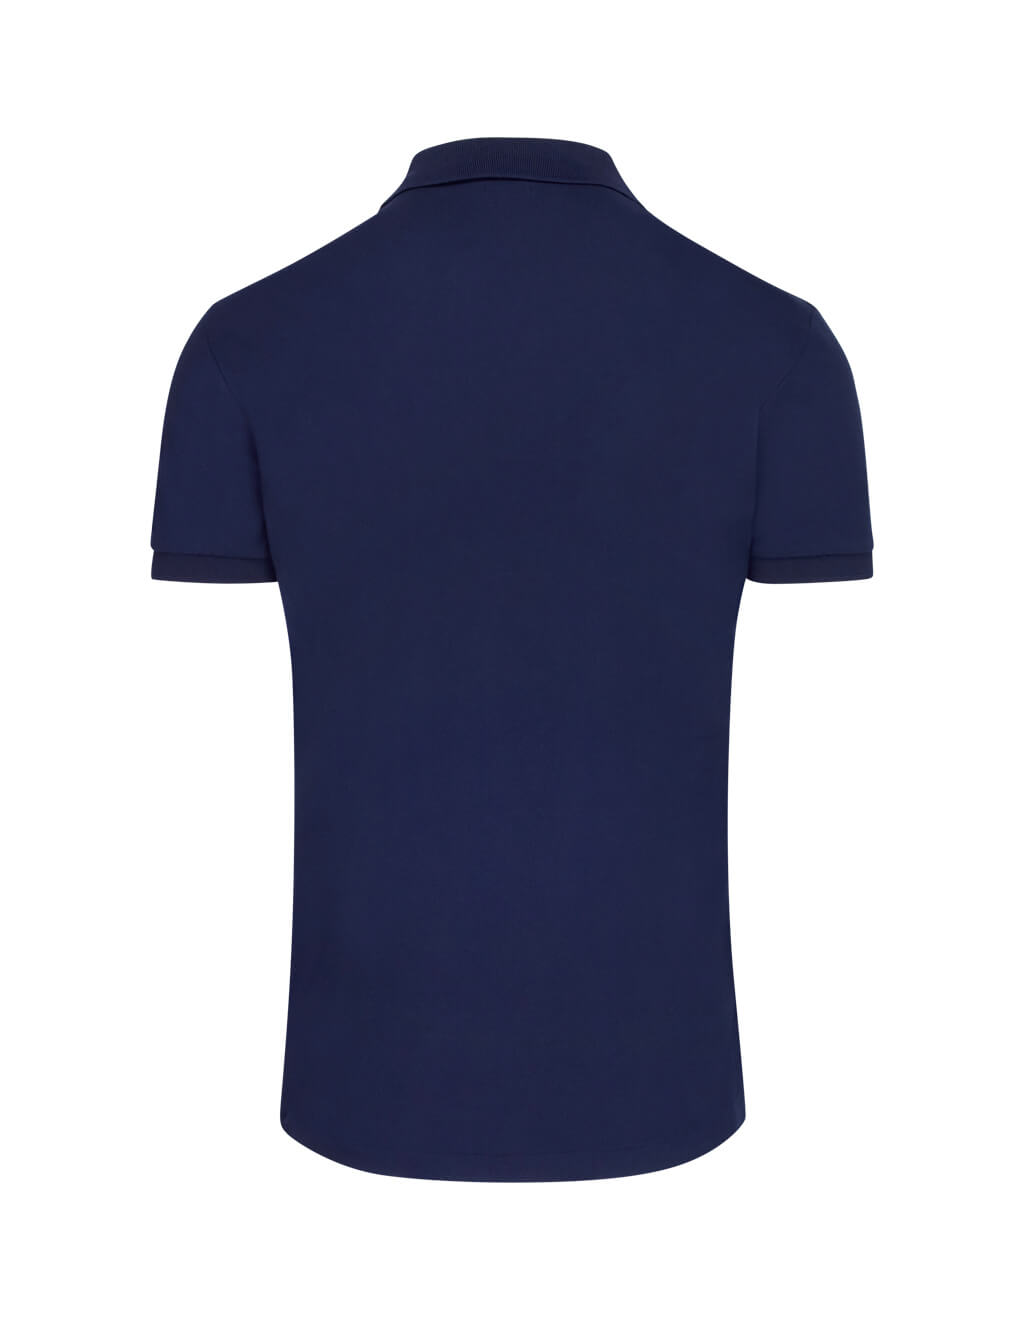 Polo Ralph Lauren Men's Giulio Fashion French Navy Slim-Fit Stretch Mesh Polo Shirt 710541705009